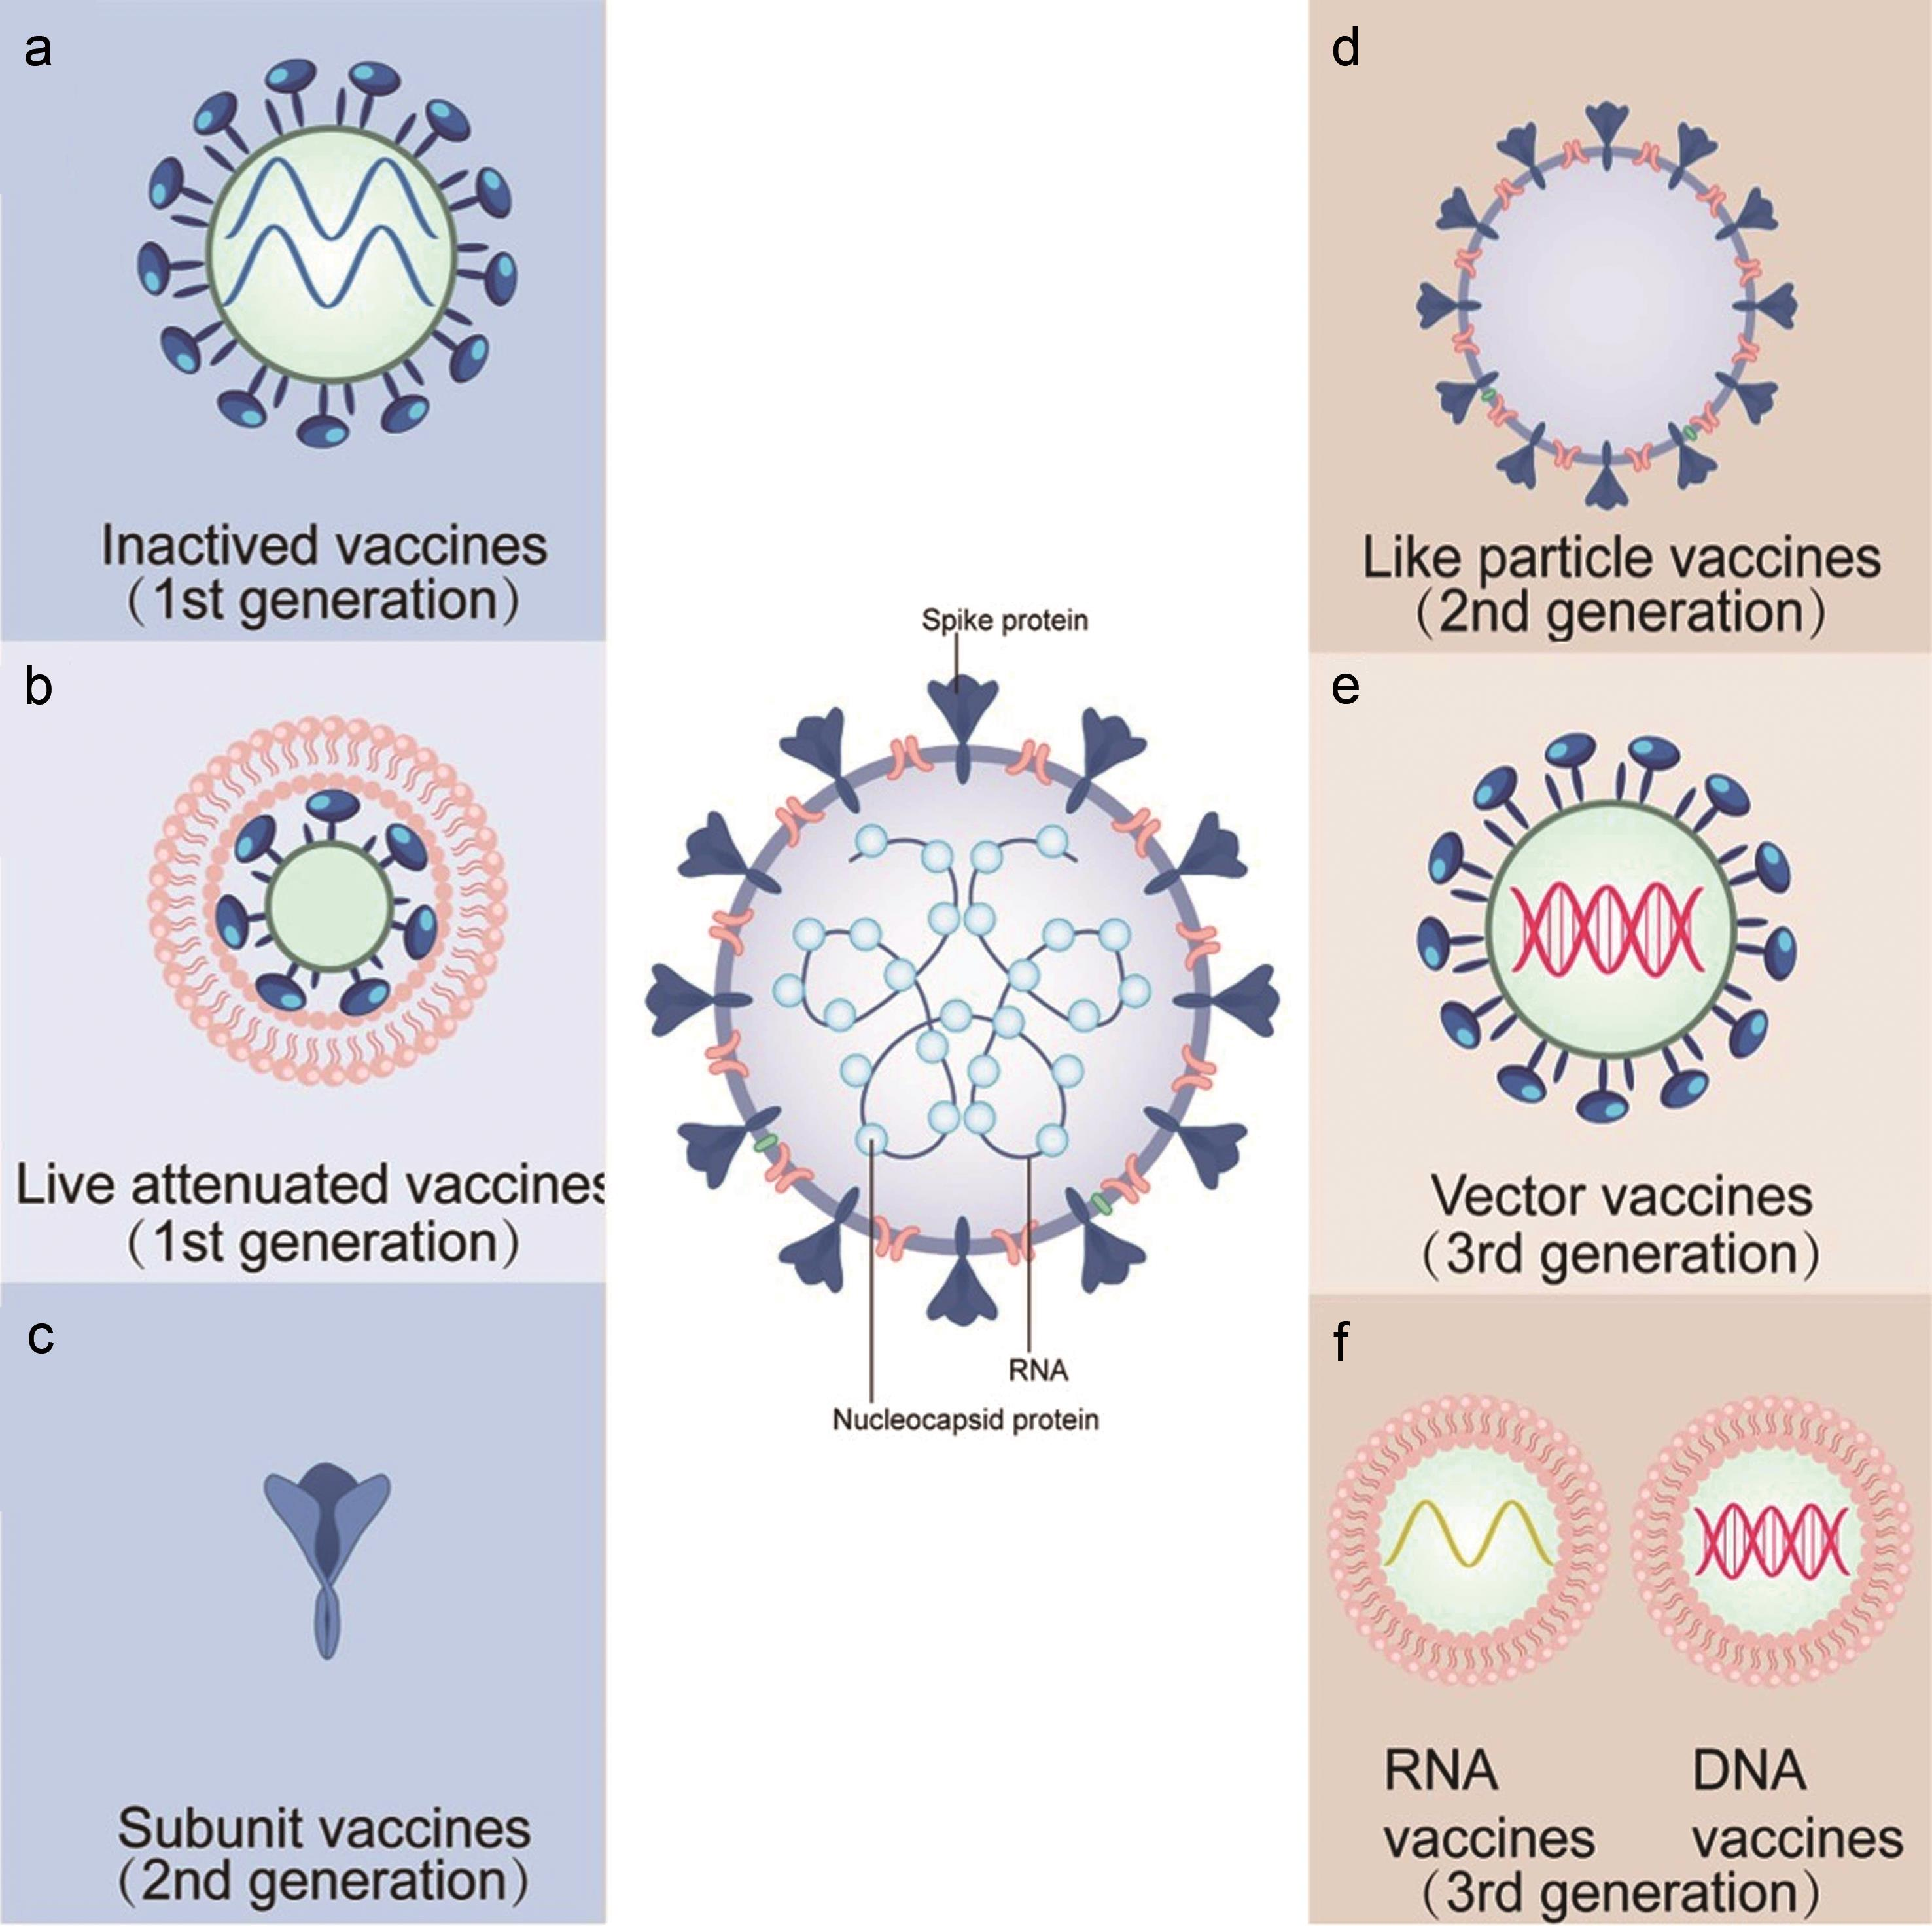 Illustrations for the six types of COVID-19 vaccines, including inactivated vaccines (a), live attenuated vaccines (b), subunit vaccines (c), virus-like particle vaccines (d), vector vaccine (e), and nucleic acid (DNA or RNA) vaccines (f).